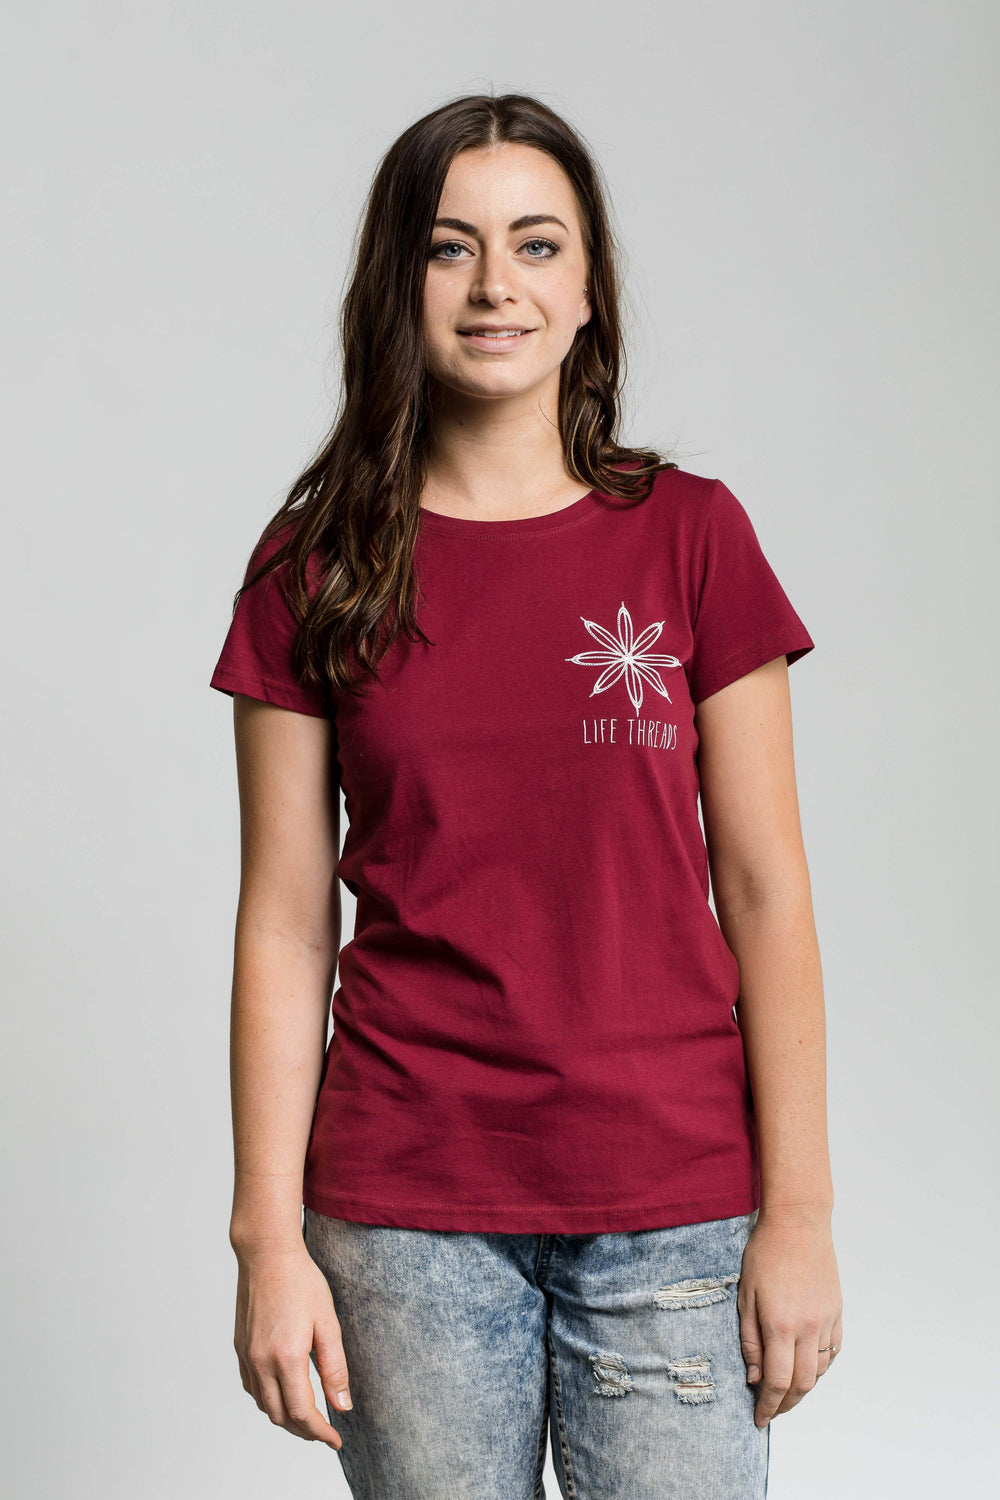 Flower - Fairtrade & Organic T-Shirt-Fair Trade Clothing by Life Threads